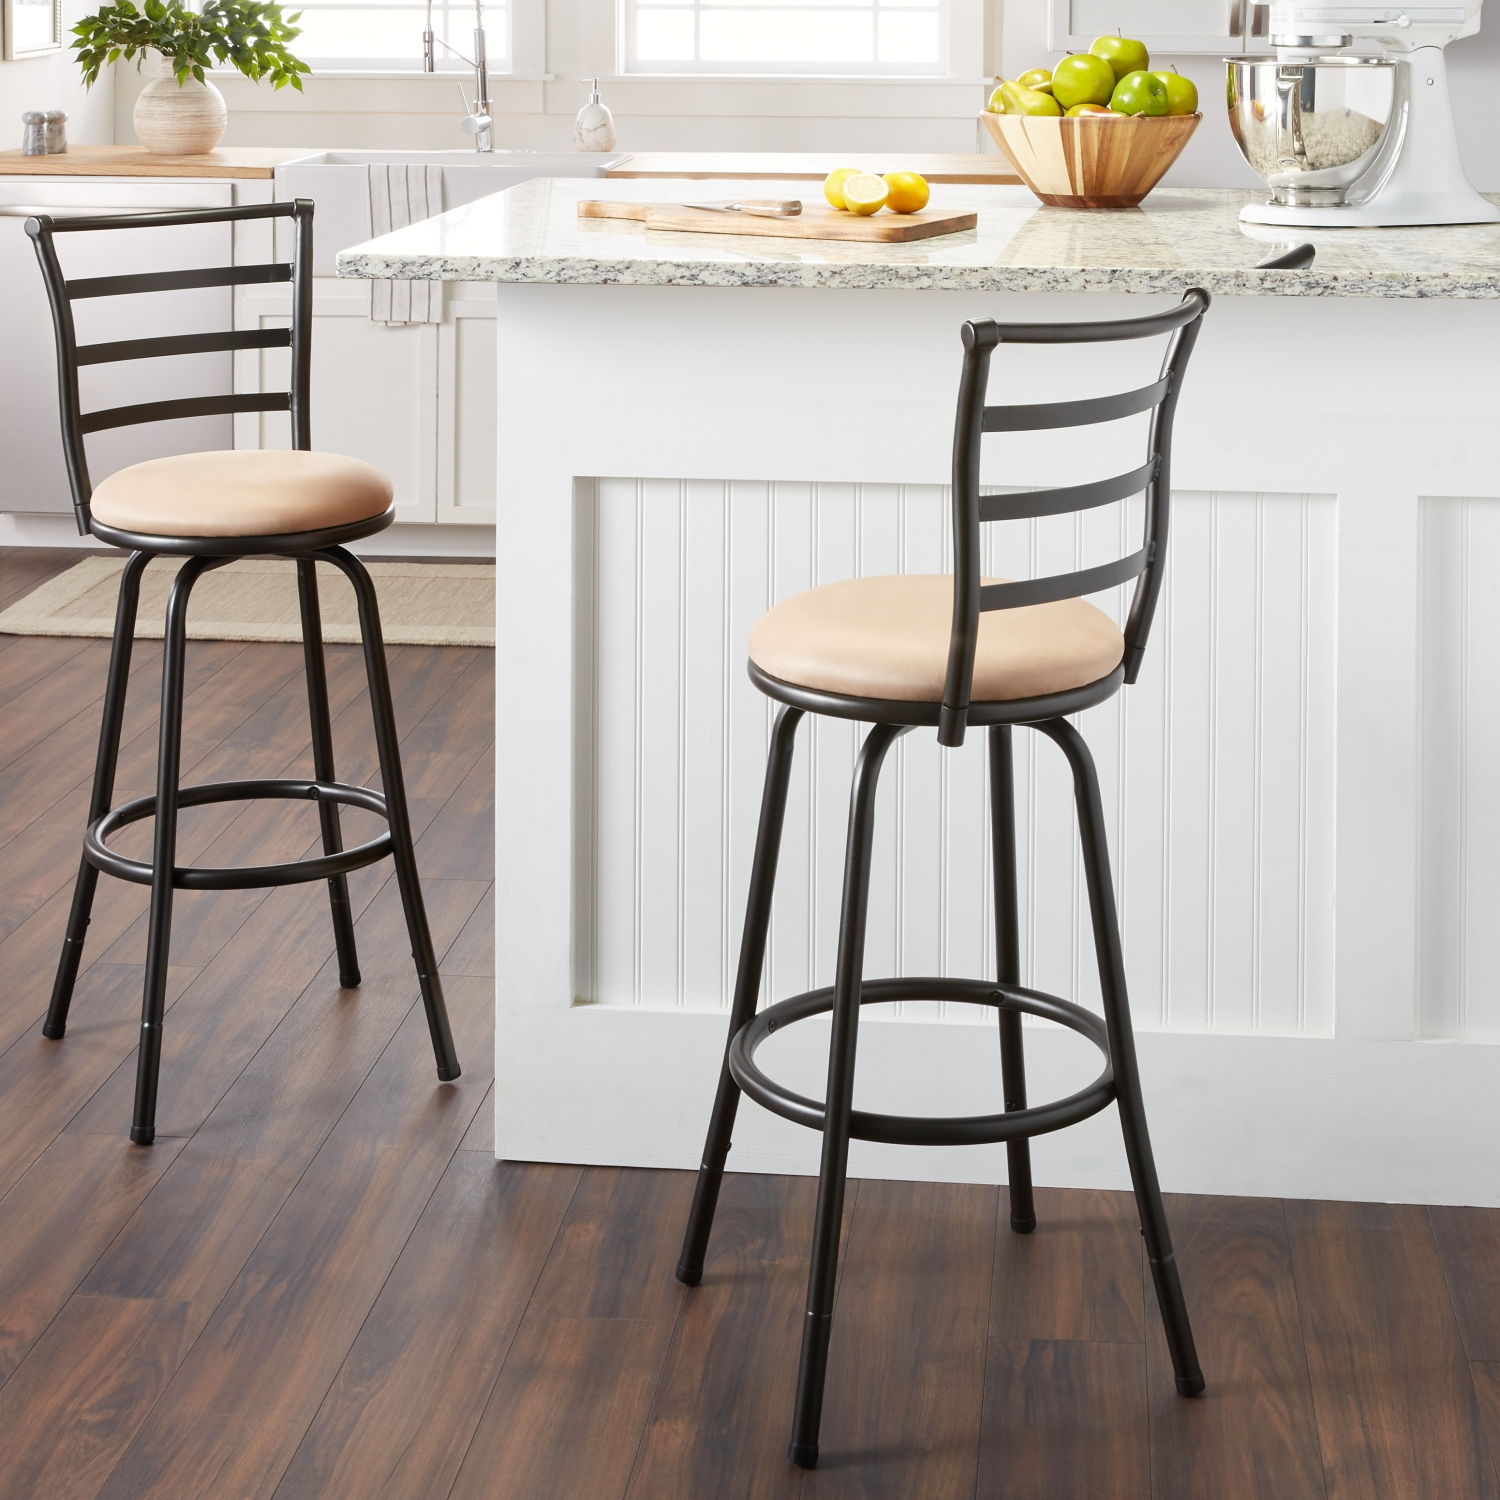 Details About Metal Bar Stool Adjustable Round Padded Seat Counter Height Dining Swivel Chair